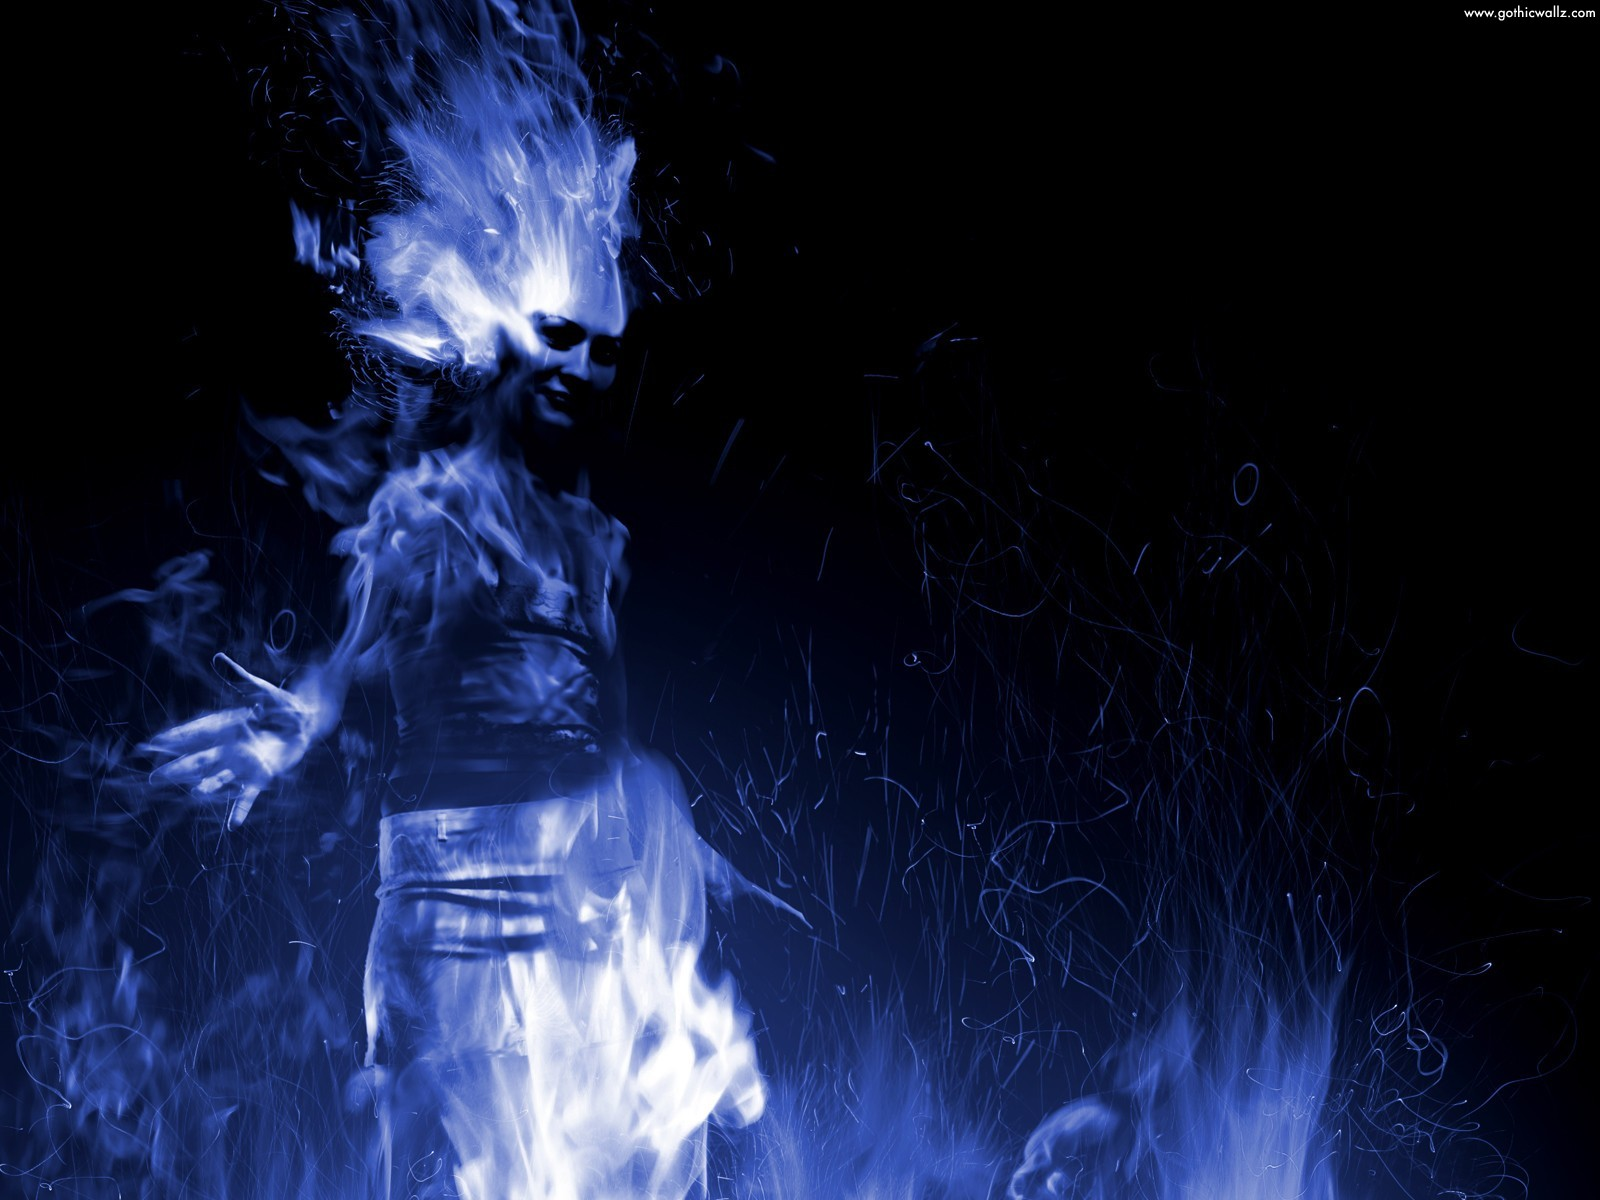 Blue Flame Girl | Gothic Wallpaper Download